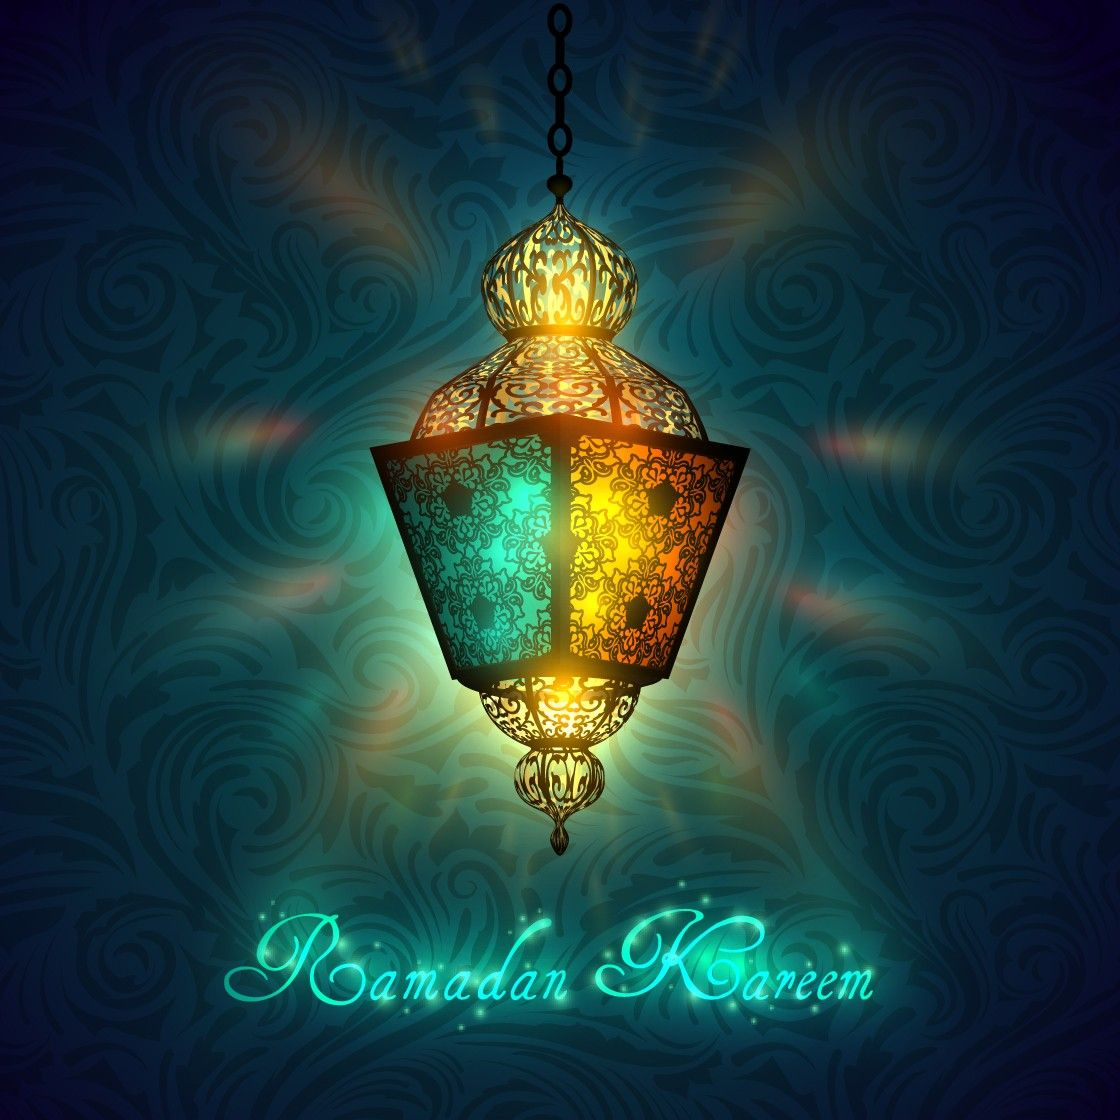 Hd wallpaper ramzan mubarak - Ramadan Mubarak Hd Wallpapers 4